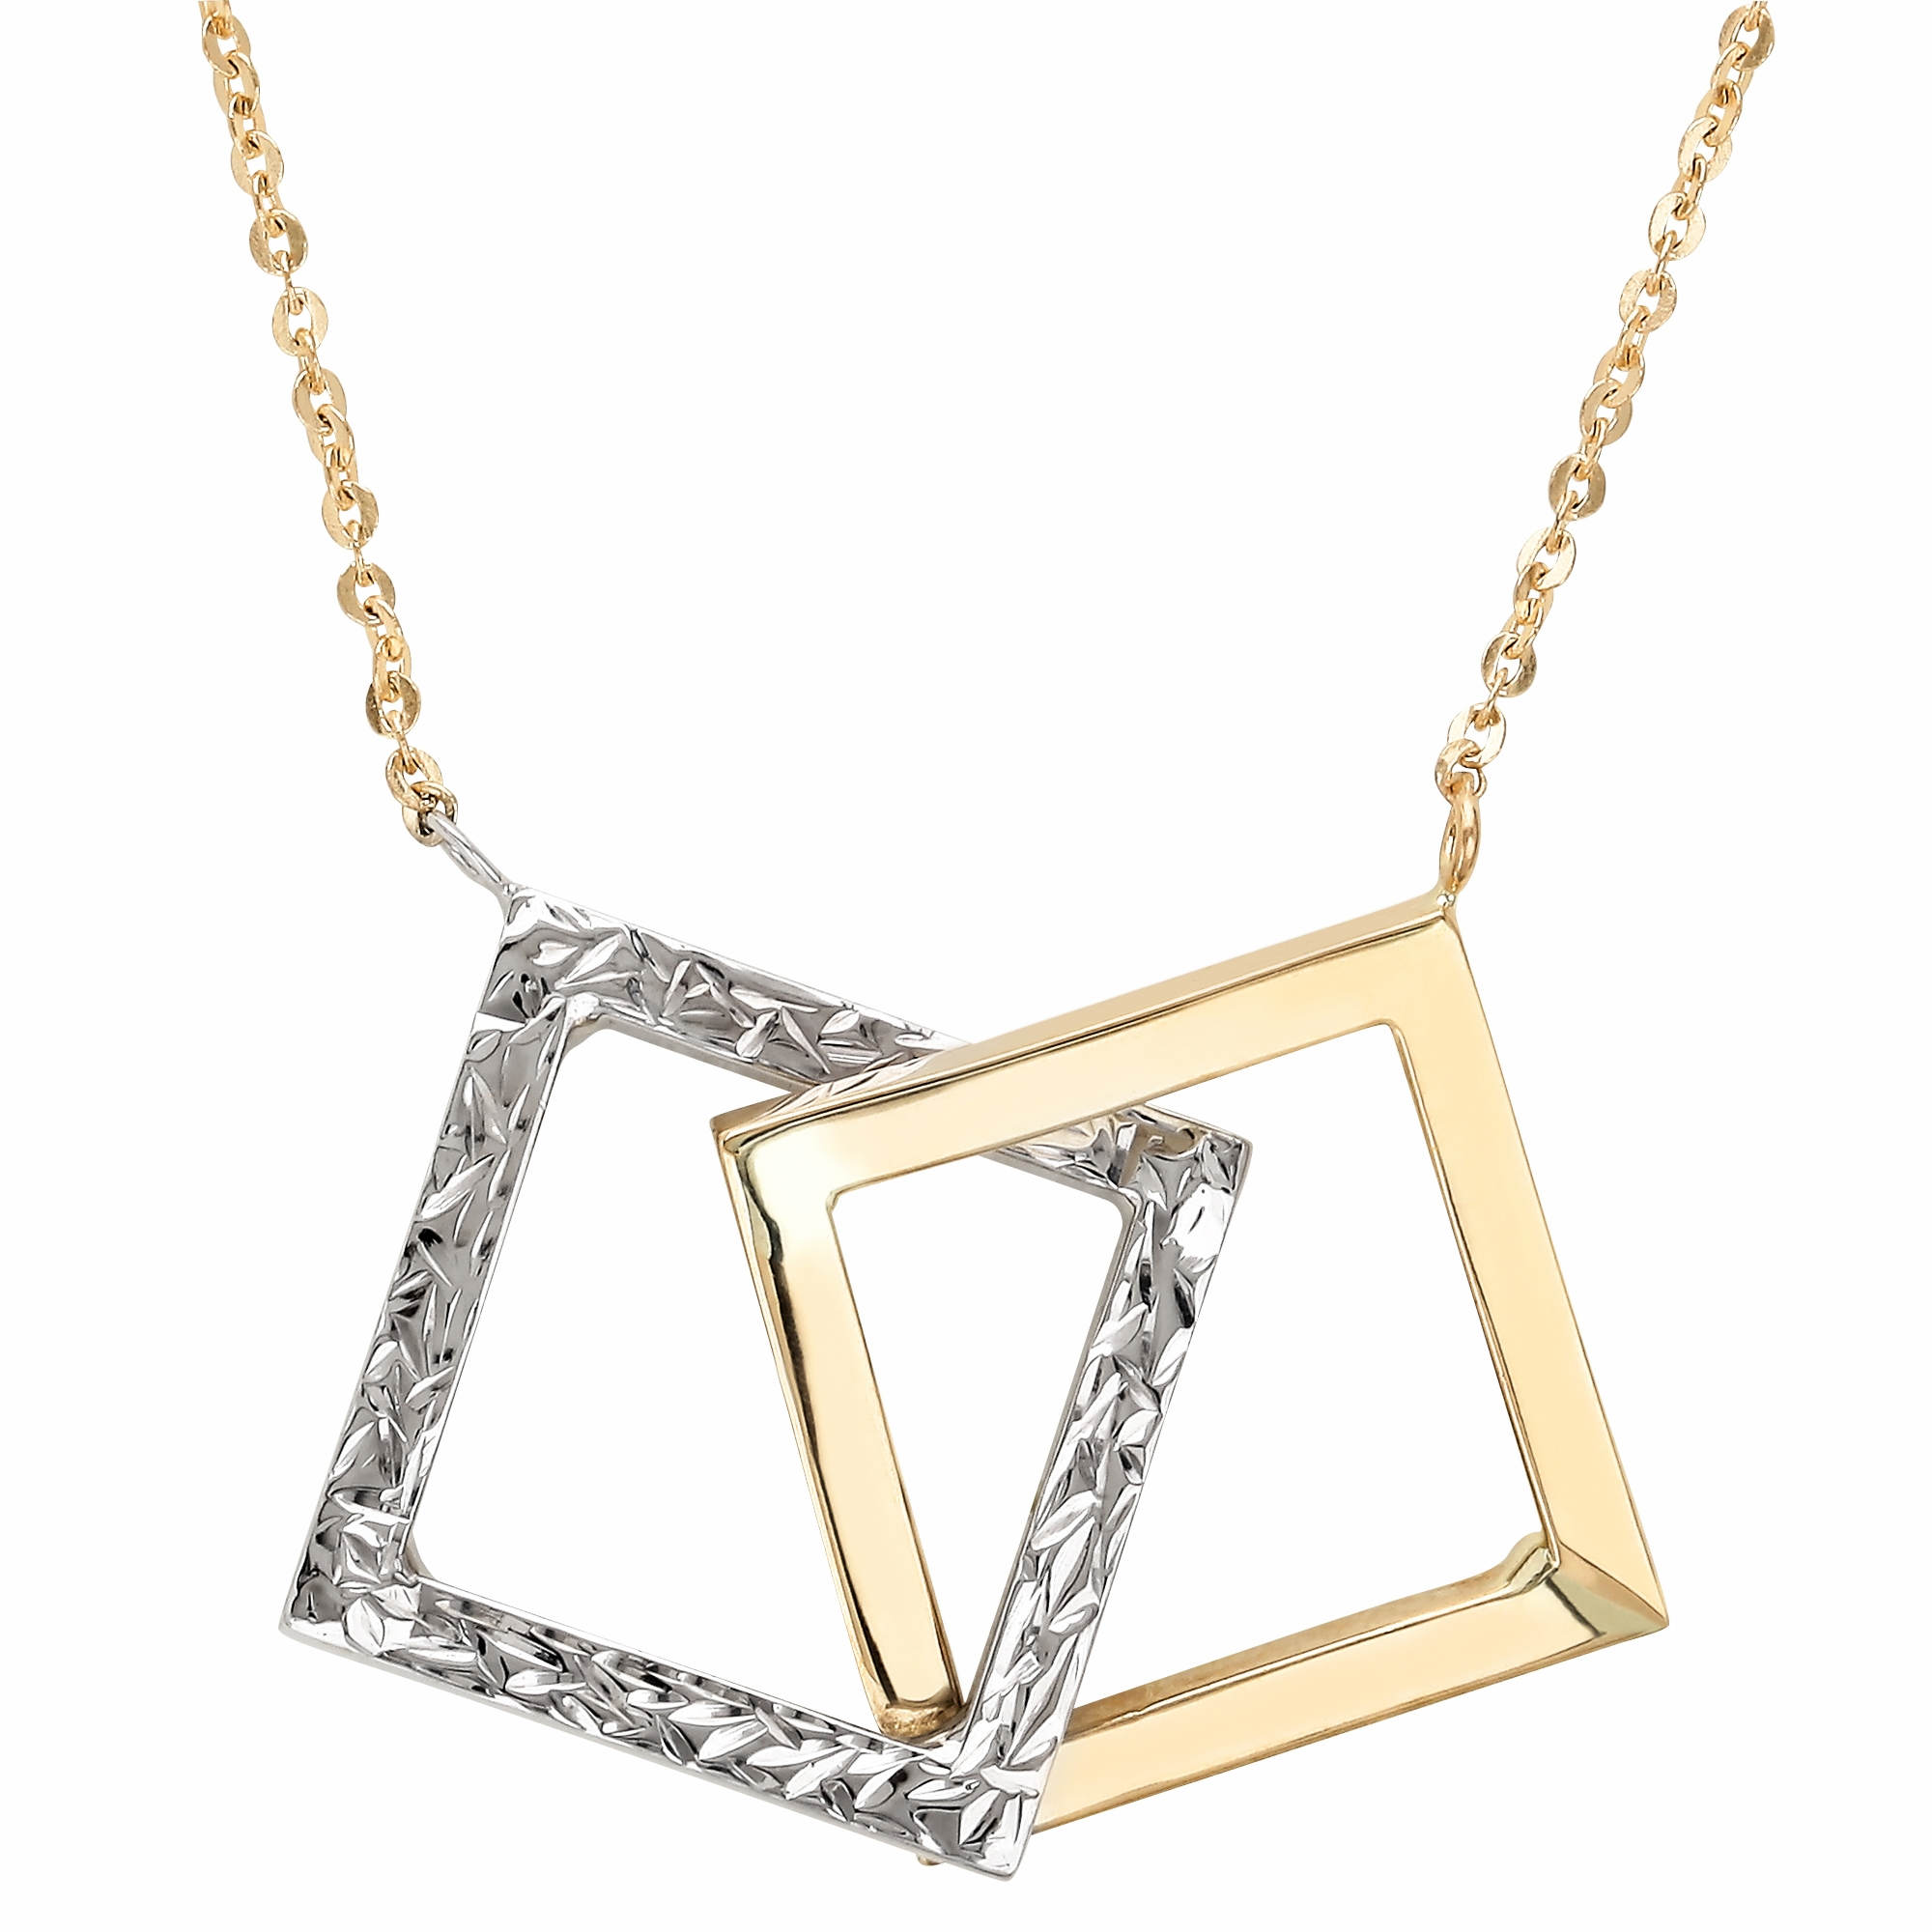 14k Two-Tone Gold Interlocking Square Pendant  Necklace